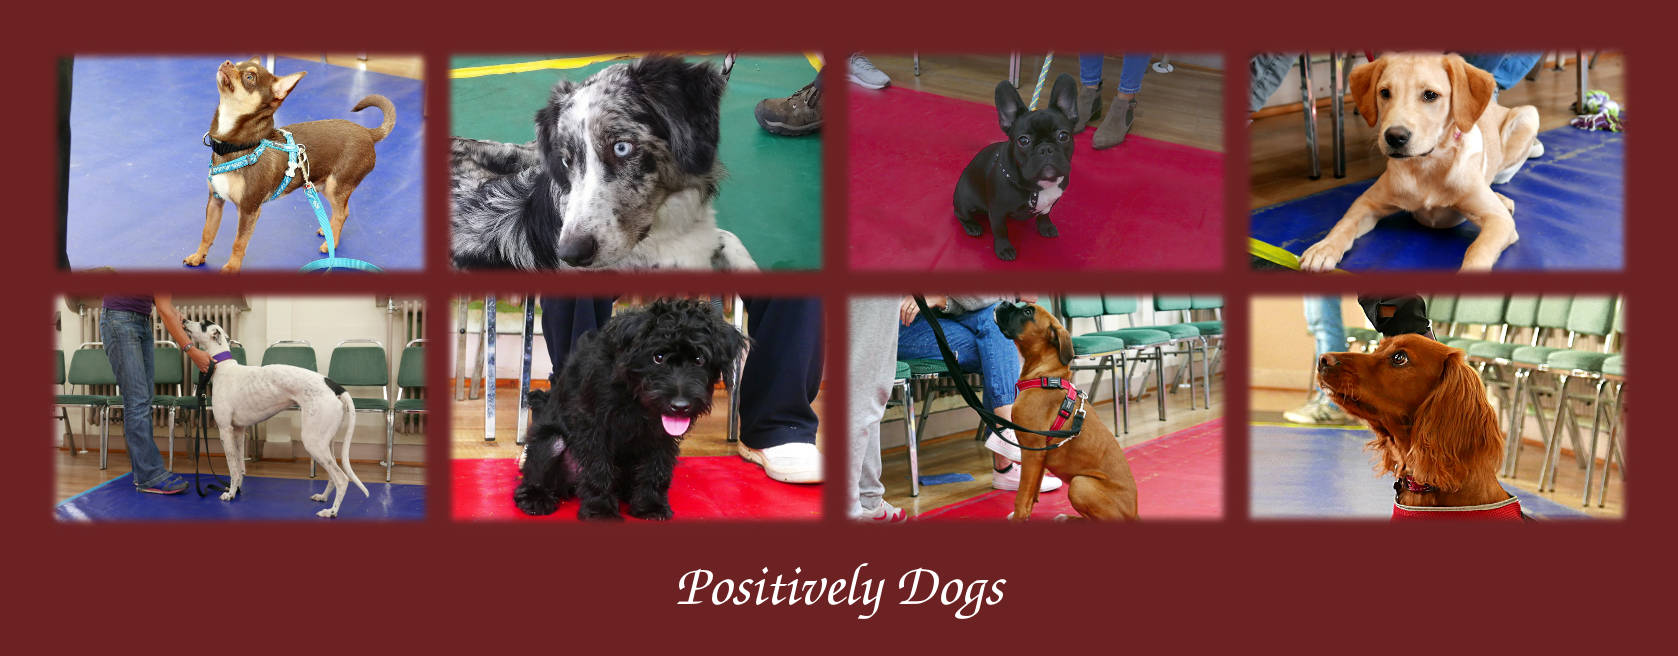 Positively Dogs Tuesday